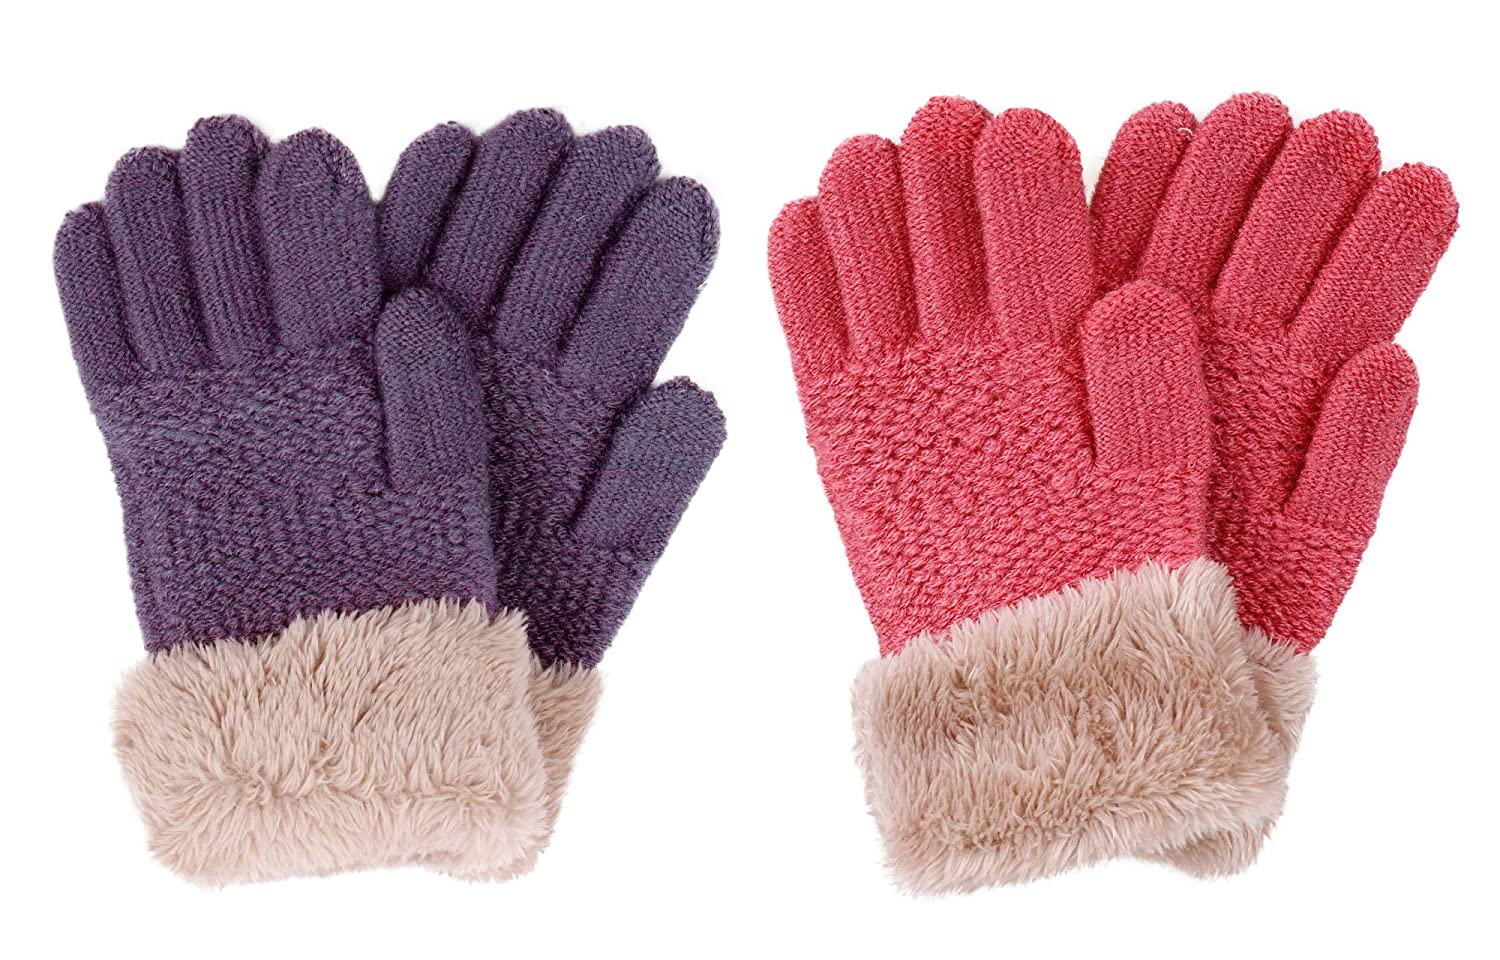 2 & 3 Pack Kids Touchscreen Winter Knit Mittens with Faux Fur Cuff